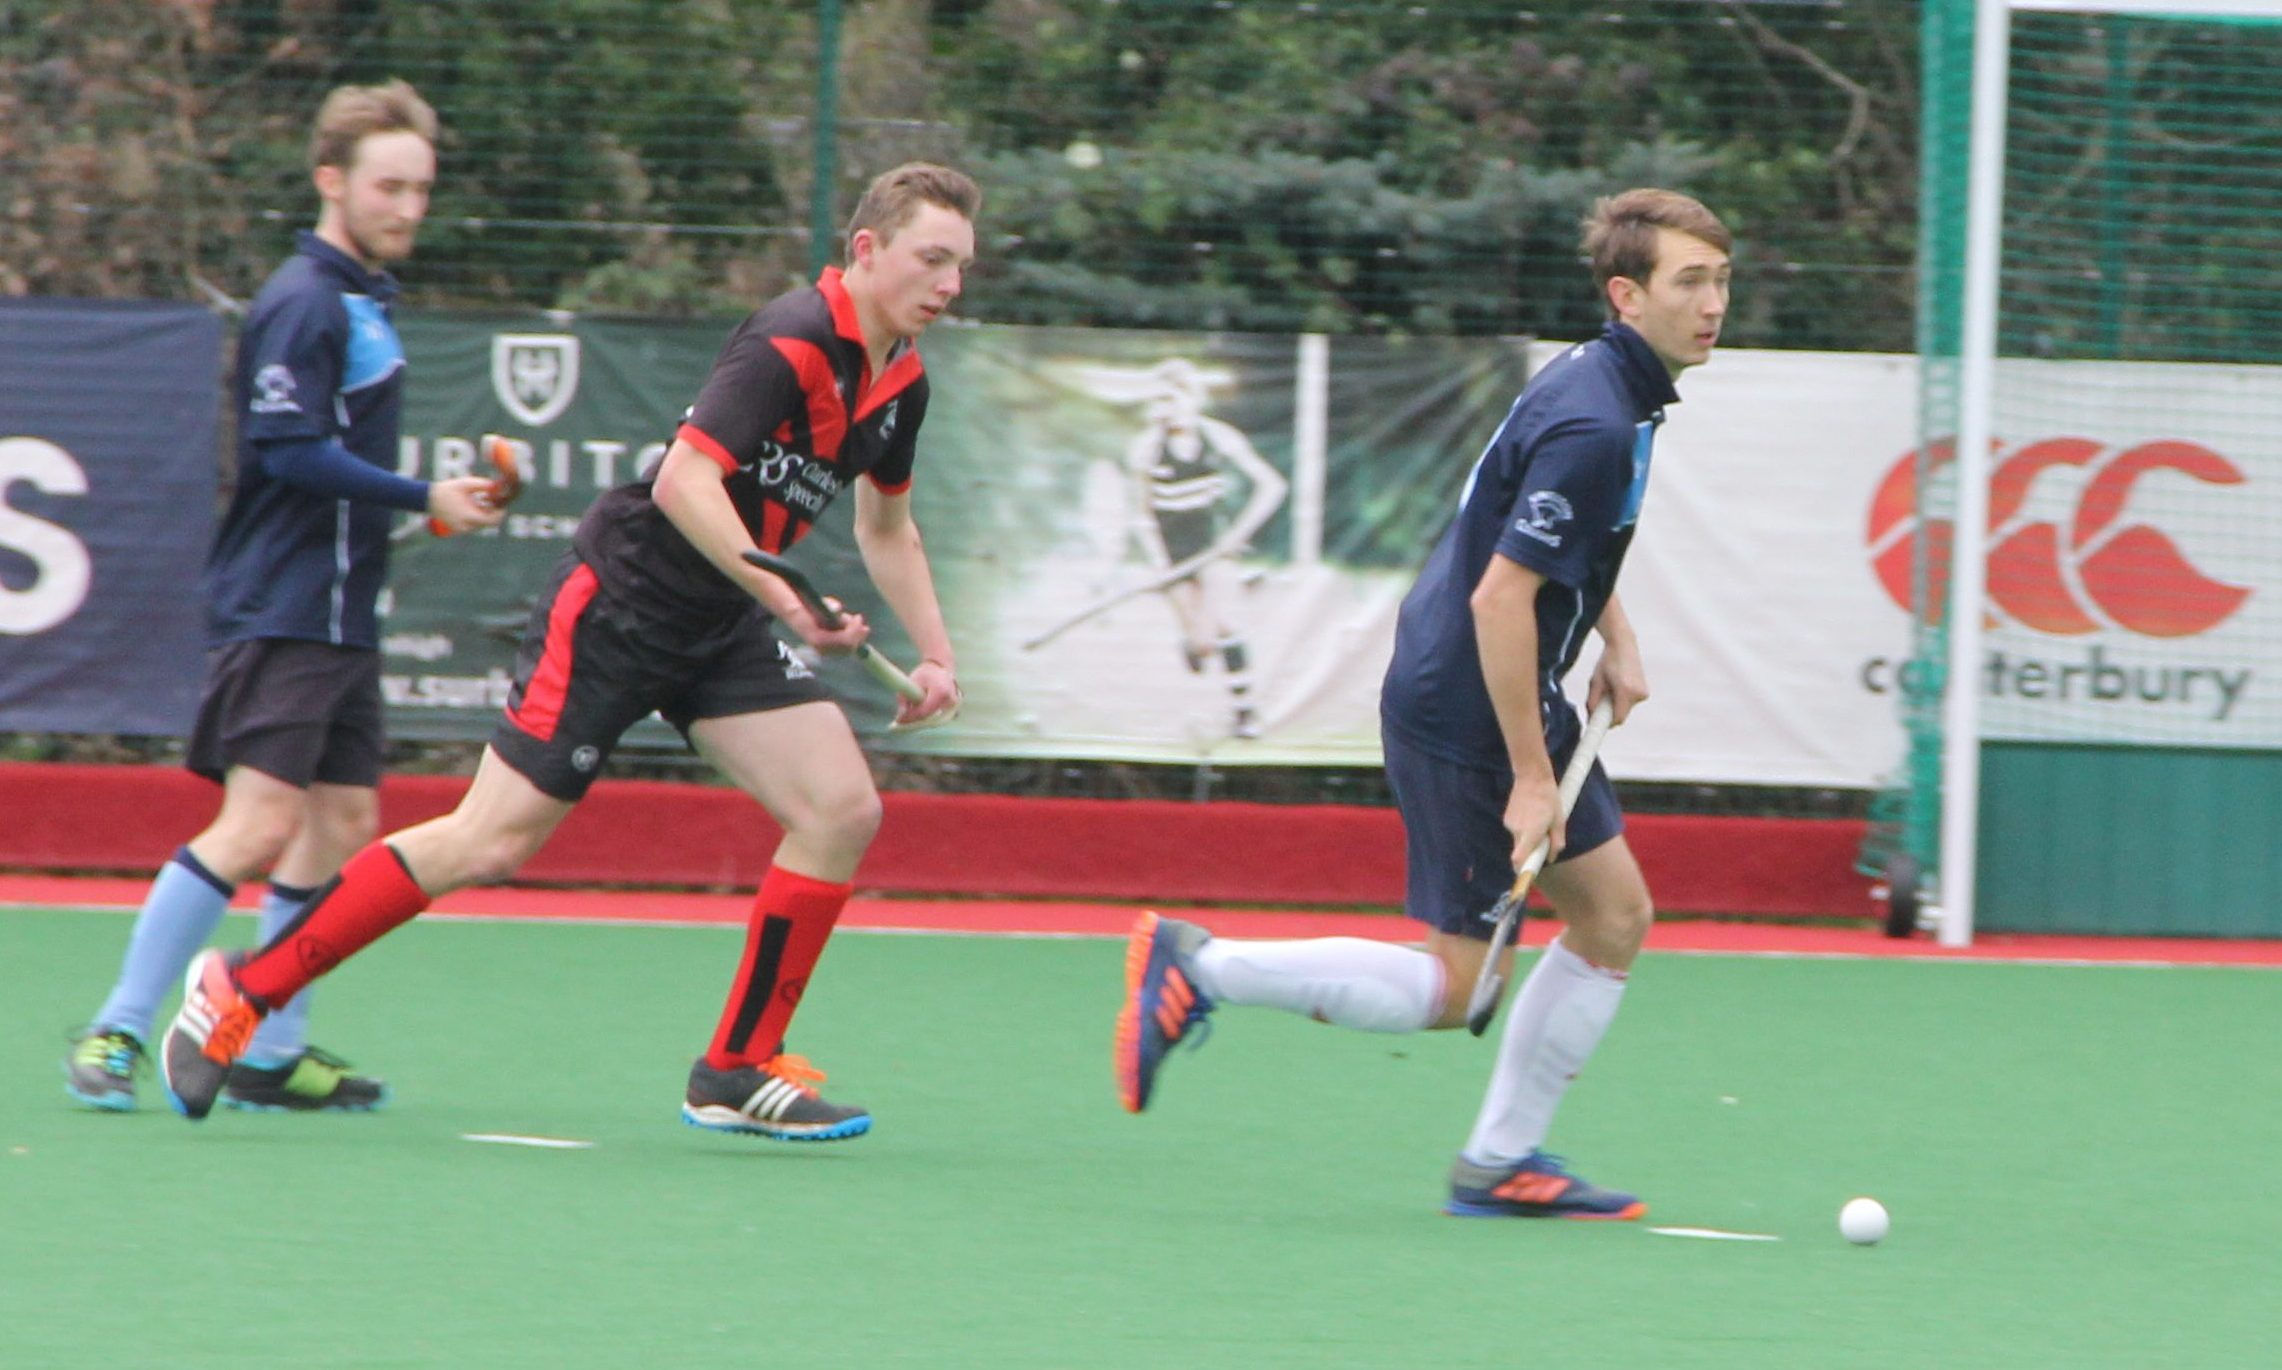 Will Calnan running past defenders with ease. Photo: Soile Ntutu